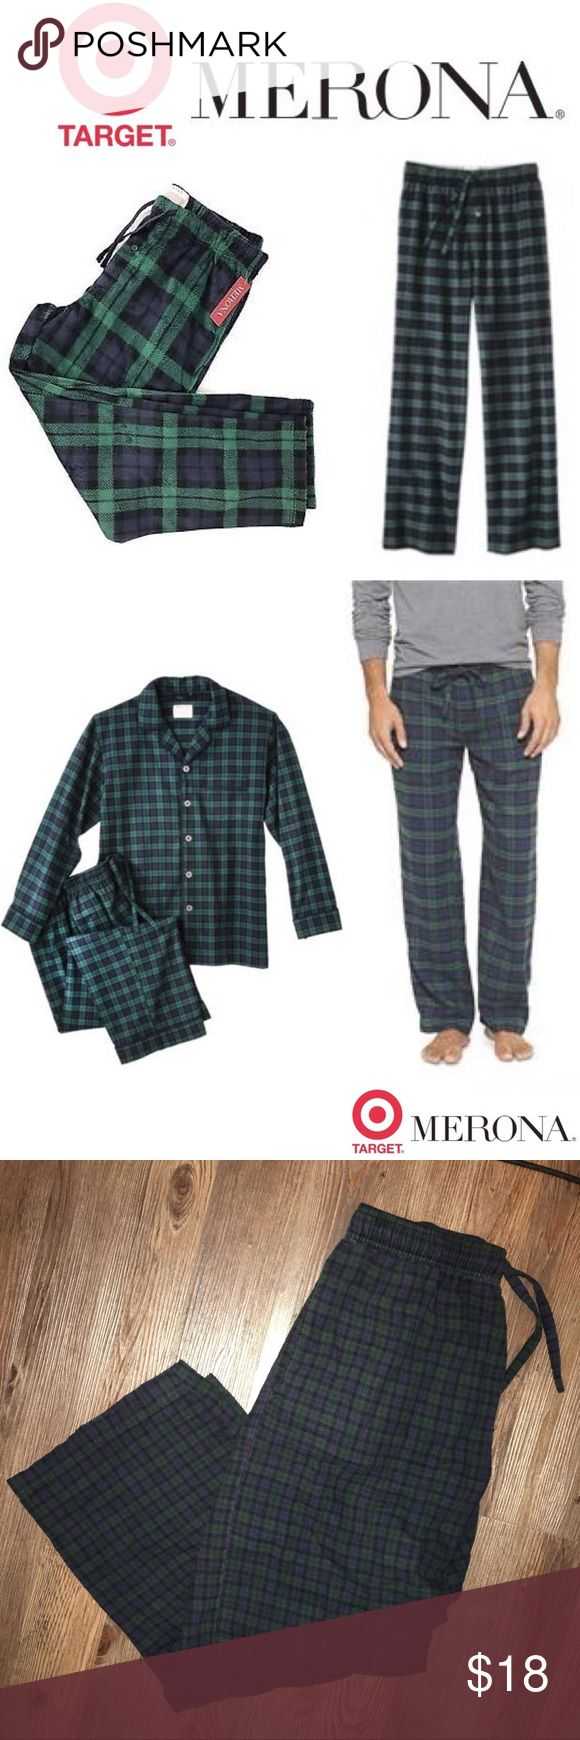 Target Merona Flannel Sleep Pants Blackwatch Plaid Pull on some comfort with Merona Men's Flannel Sleep Pants in blackwatch plaid. These men's sleep pants are made of soft warm flannel in a comfy relaxed fit. Great for lounging or sleeping, the flannel pajama pants have side pockets, a drawstring waist and a button fly for convenience. Plus, guys love the classic green and blue plaid pattern. These men's pajama pants make a perfect gift for the holidays. 100 % Cotton. EUC NO FLAWS SIZE MED…